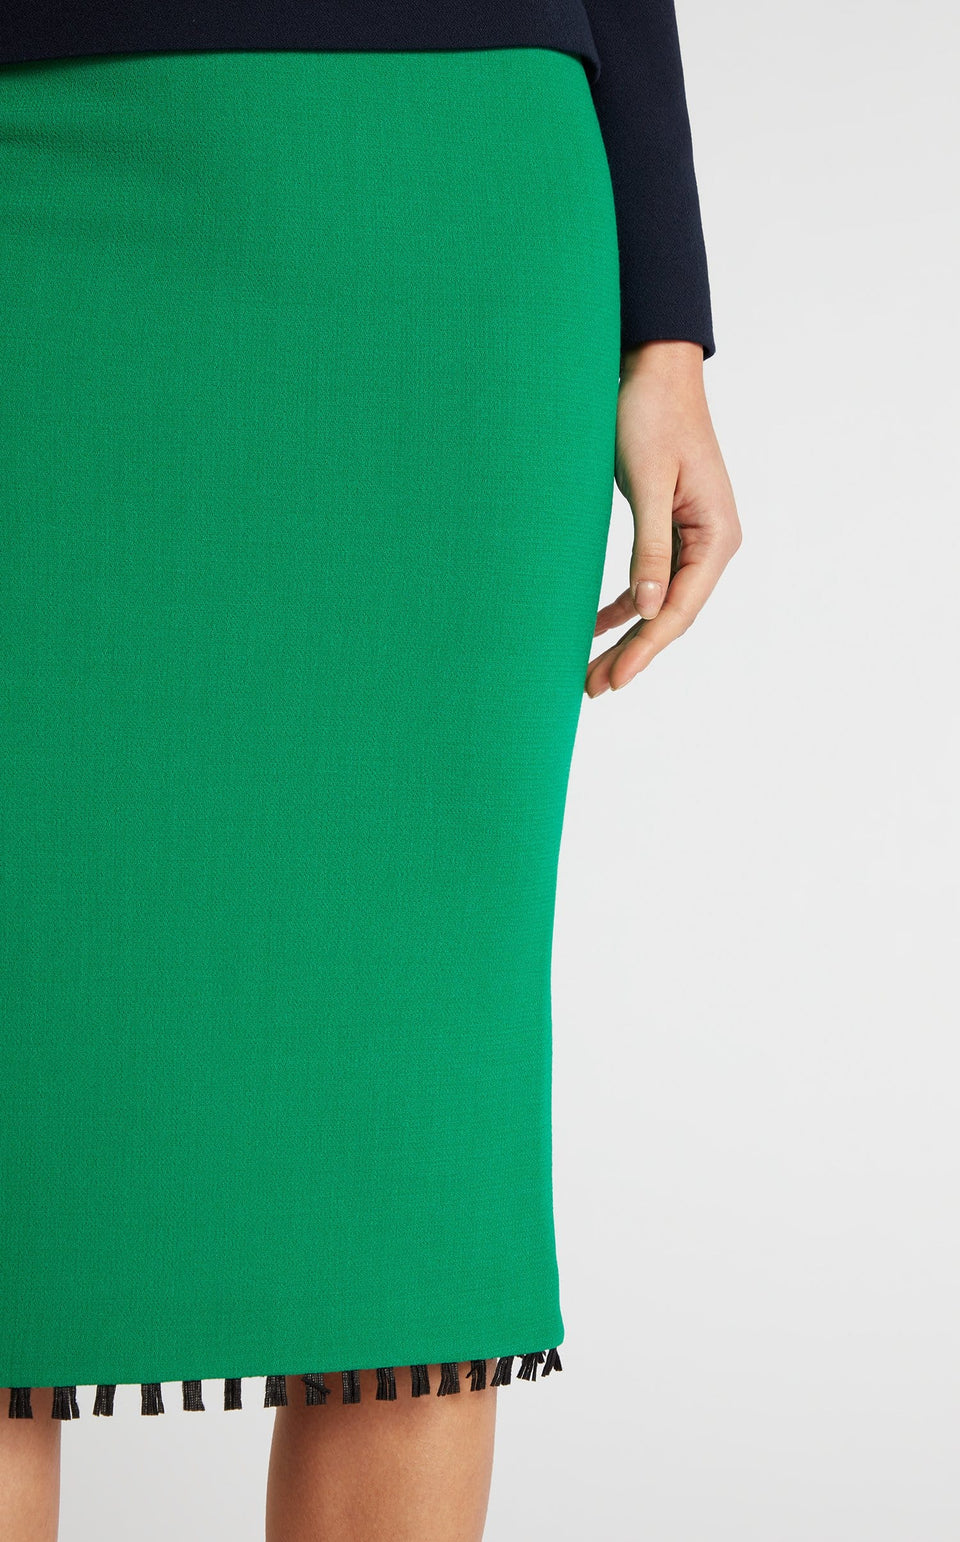 Arreton Skirt In Emerald/Black from Roland Mouret